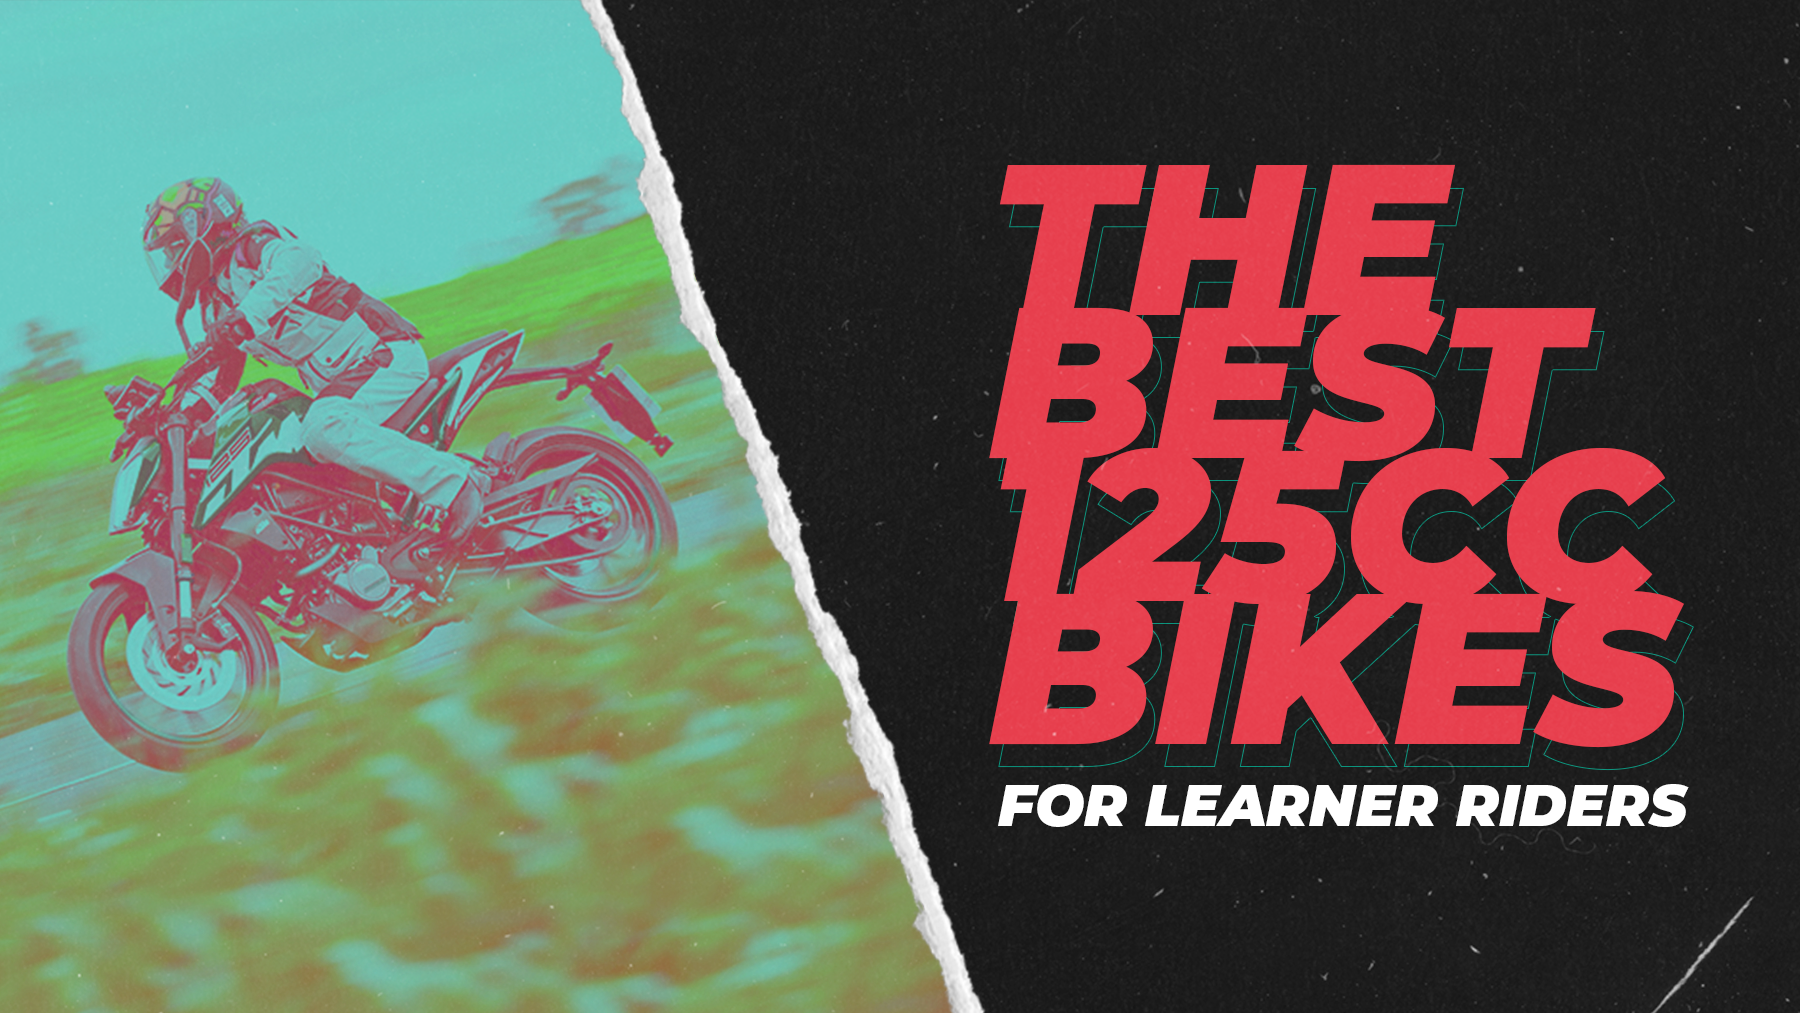 The Best 125cc Motorcycles for Learner Riders